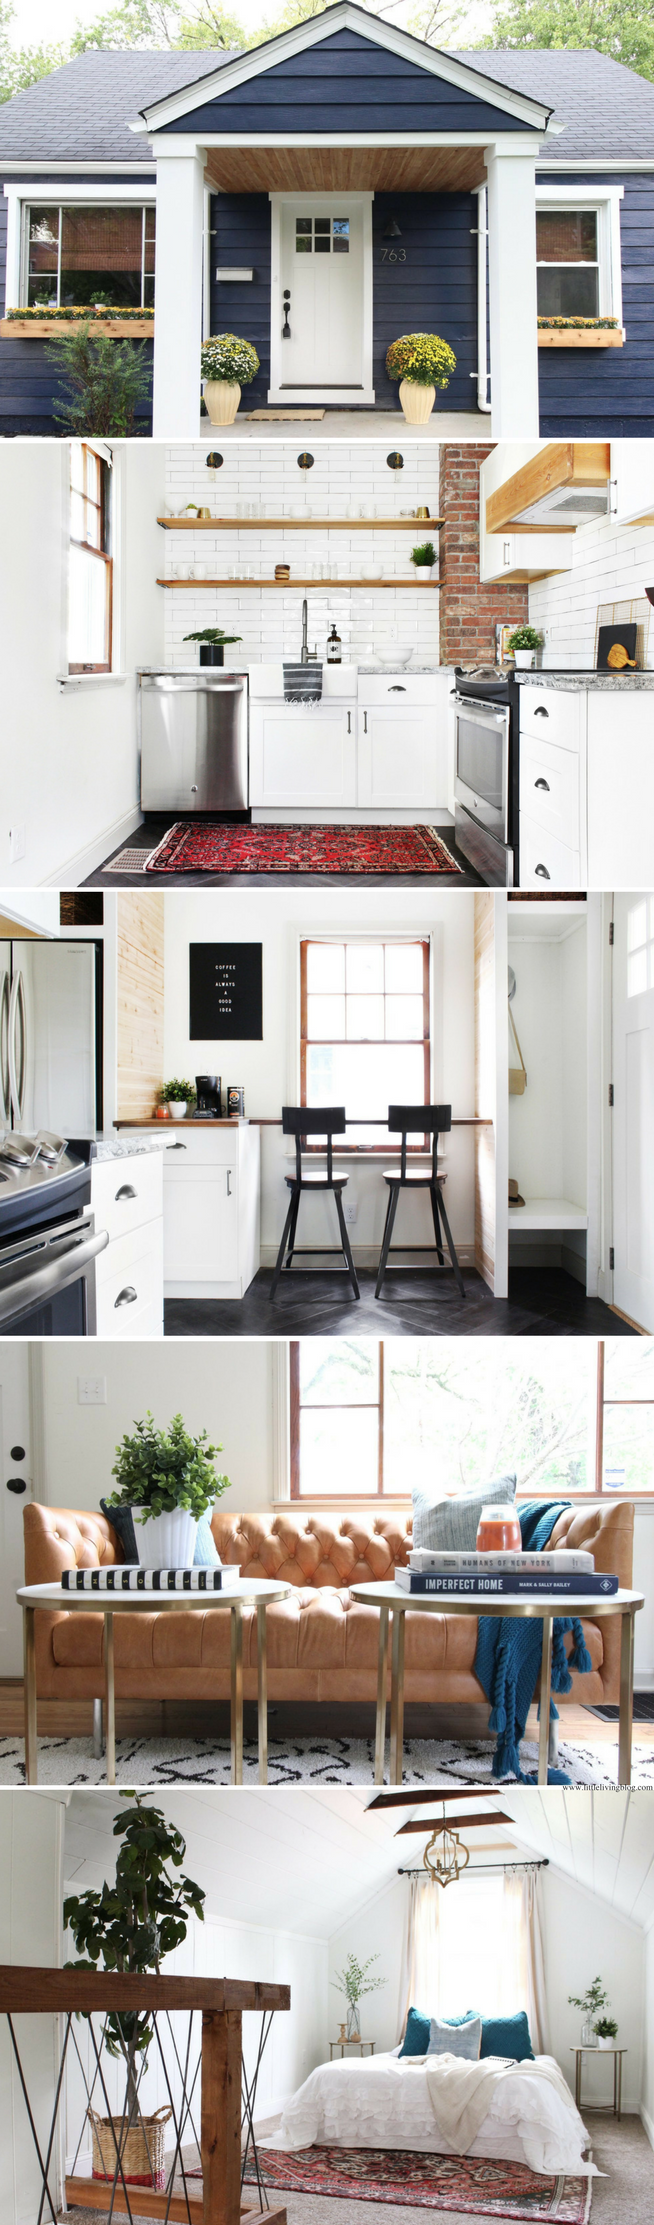 6 tips for living in a 660-square-foot cottage | tiny houses